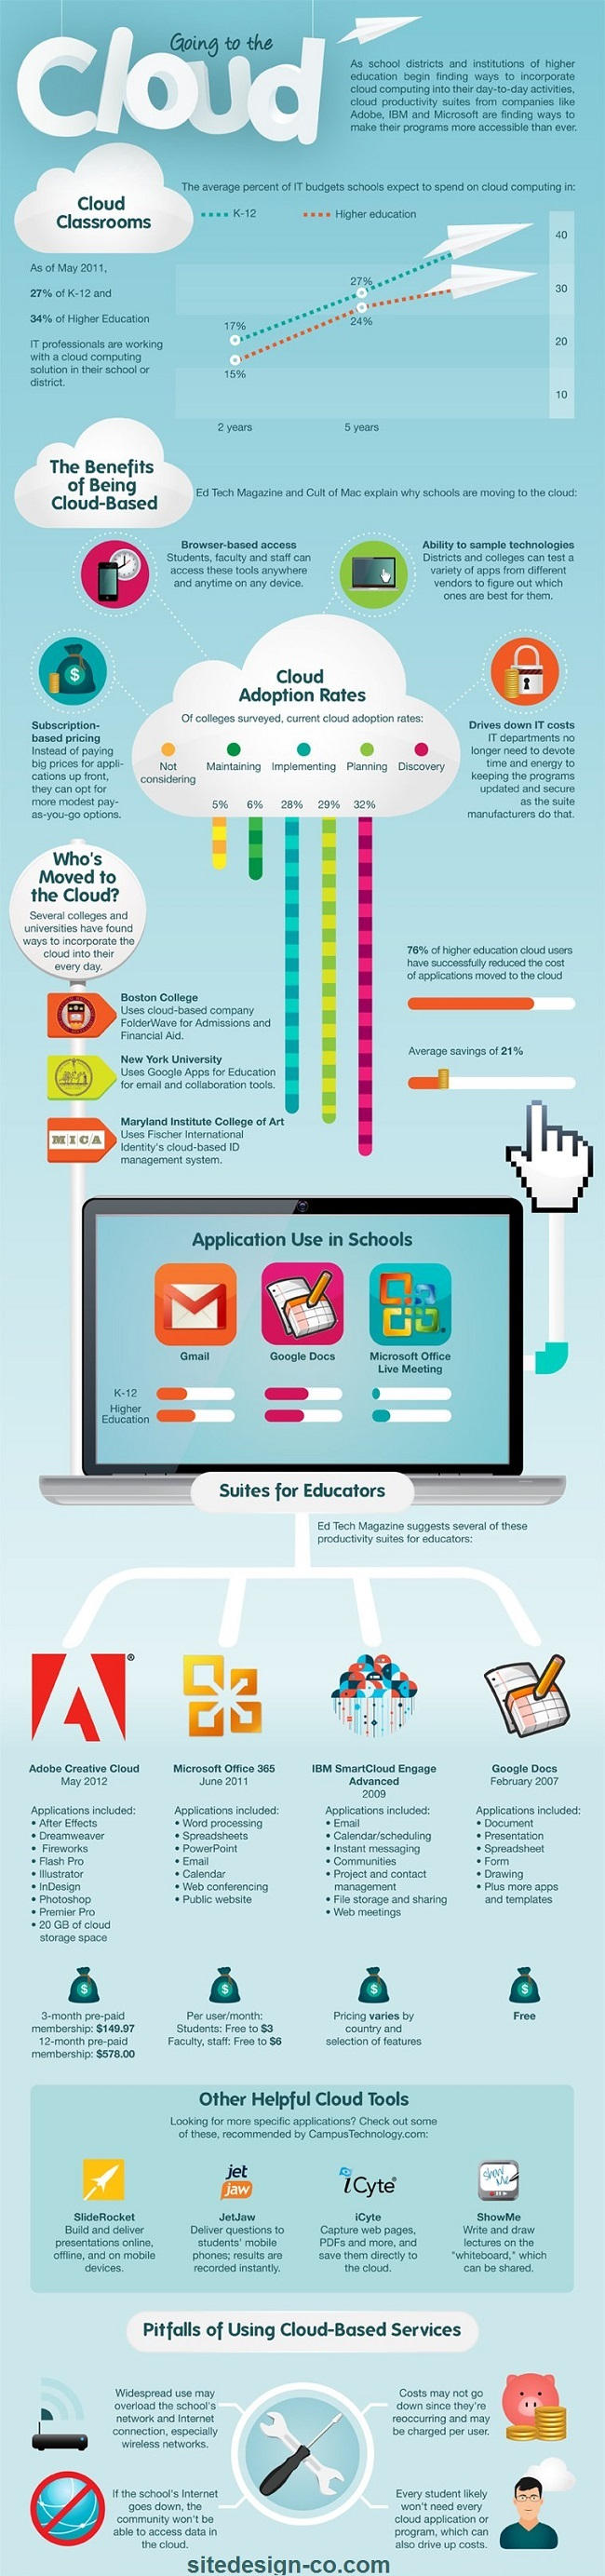 Administrator\files\UploadFile\760x3326xcolleges-cloud-computing-infographic.jpg.pagespeed.ic.tCW48wOOMP.jpg